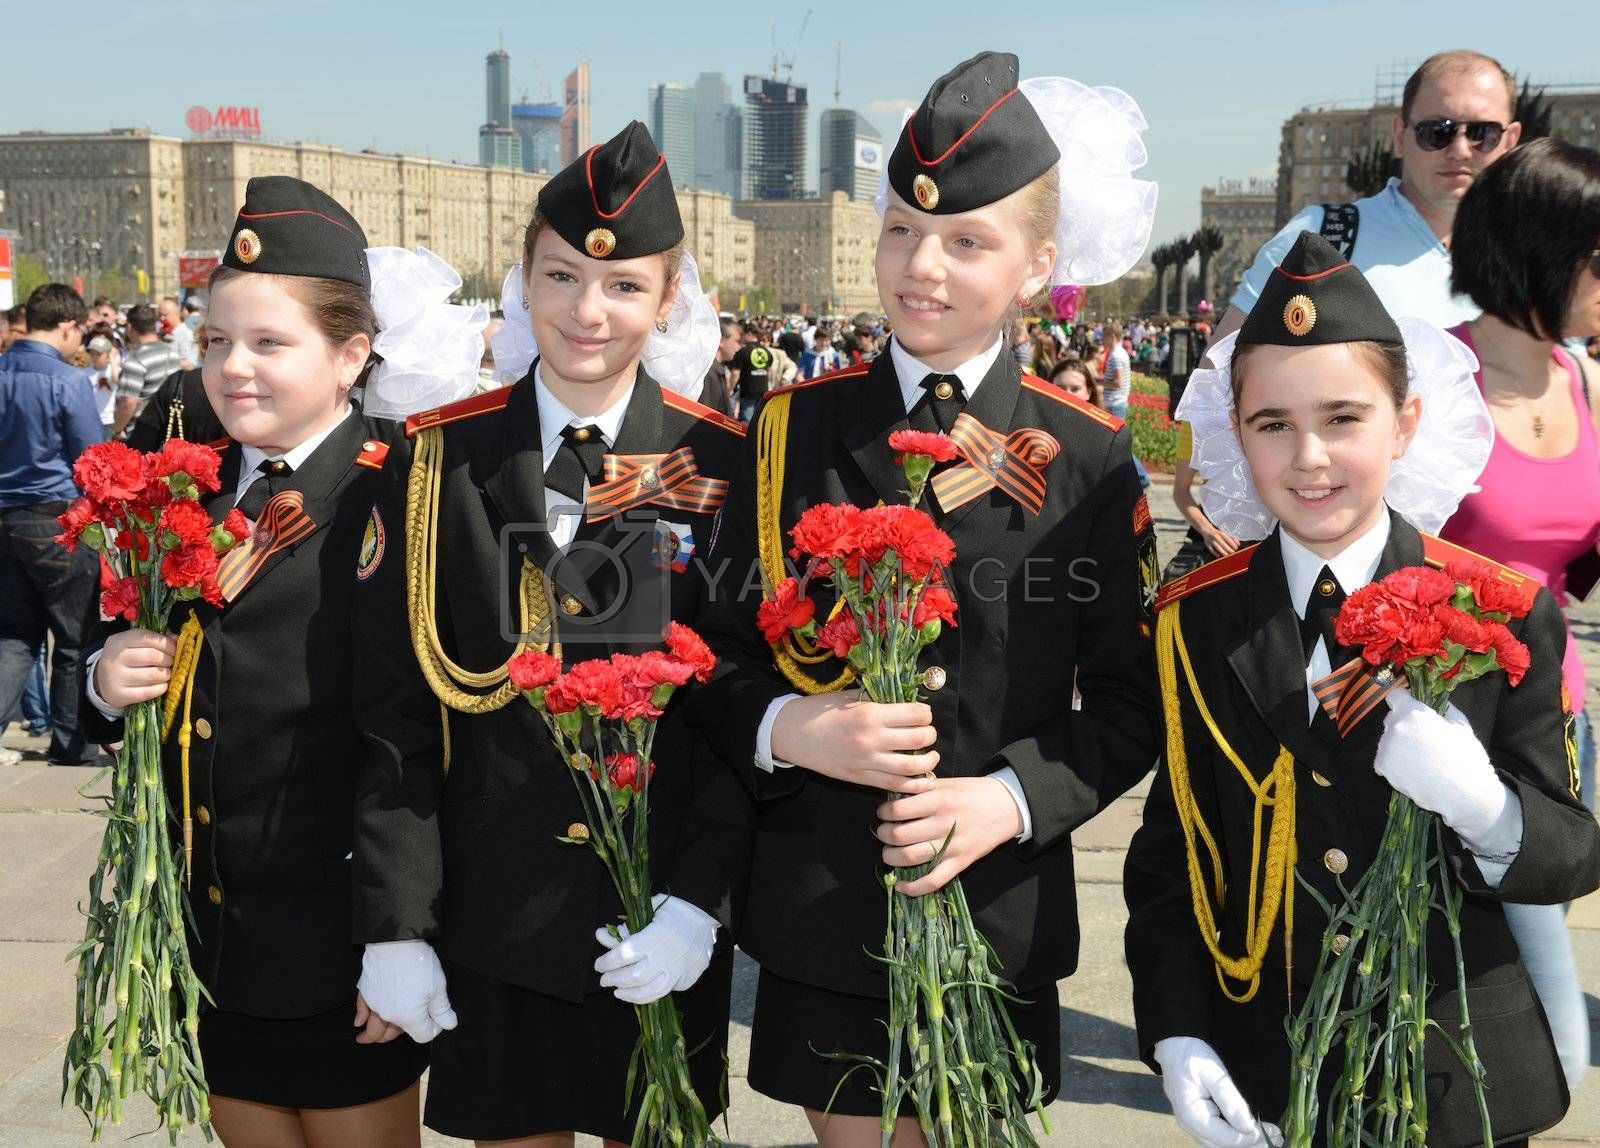 Moscow, Russia - May 9, 2013: Four young girls in uniform decorated with bearing bunch of flowers during festivities devoted to 68th anniversary of Victory Day.